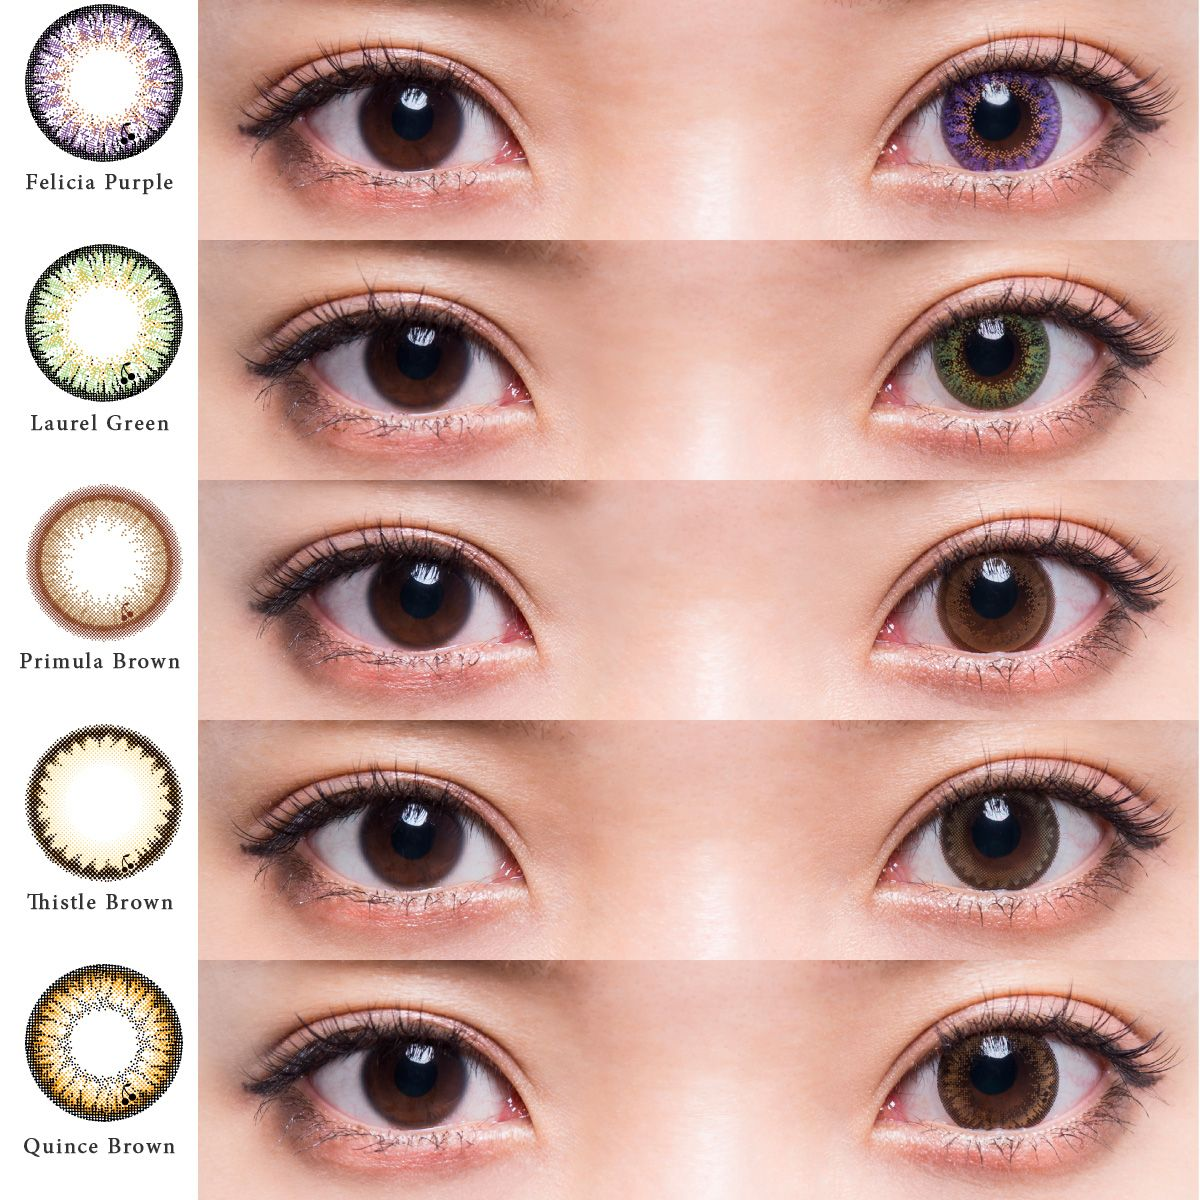 Flower eyes 1day crochet 1 box 8 pcs daily disposal 1day flower eyes 1day crochet 1 box 8 pcs daily disposal 1day disposable colored nvjuhfo Images